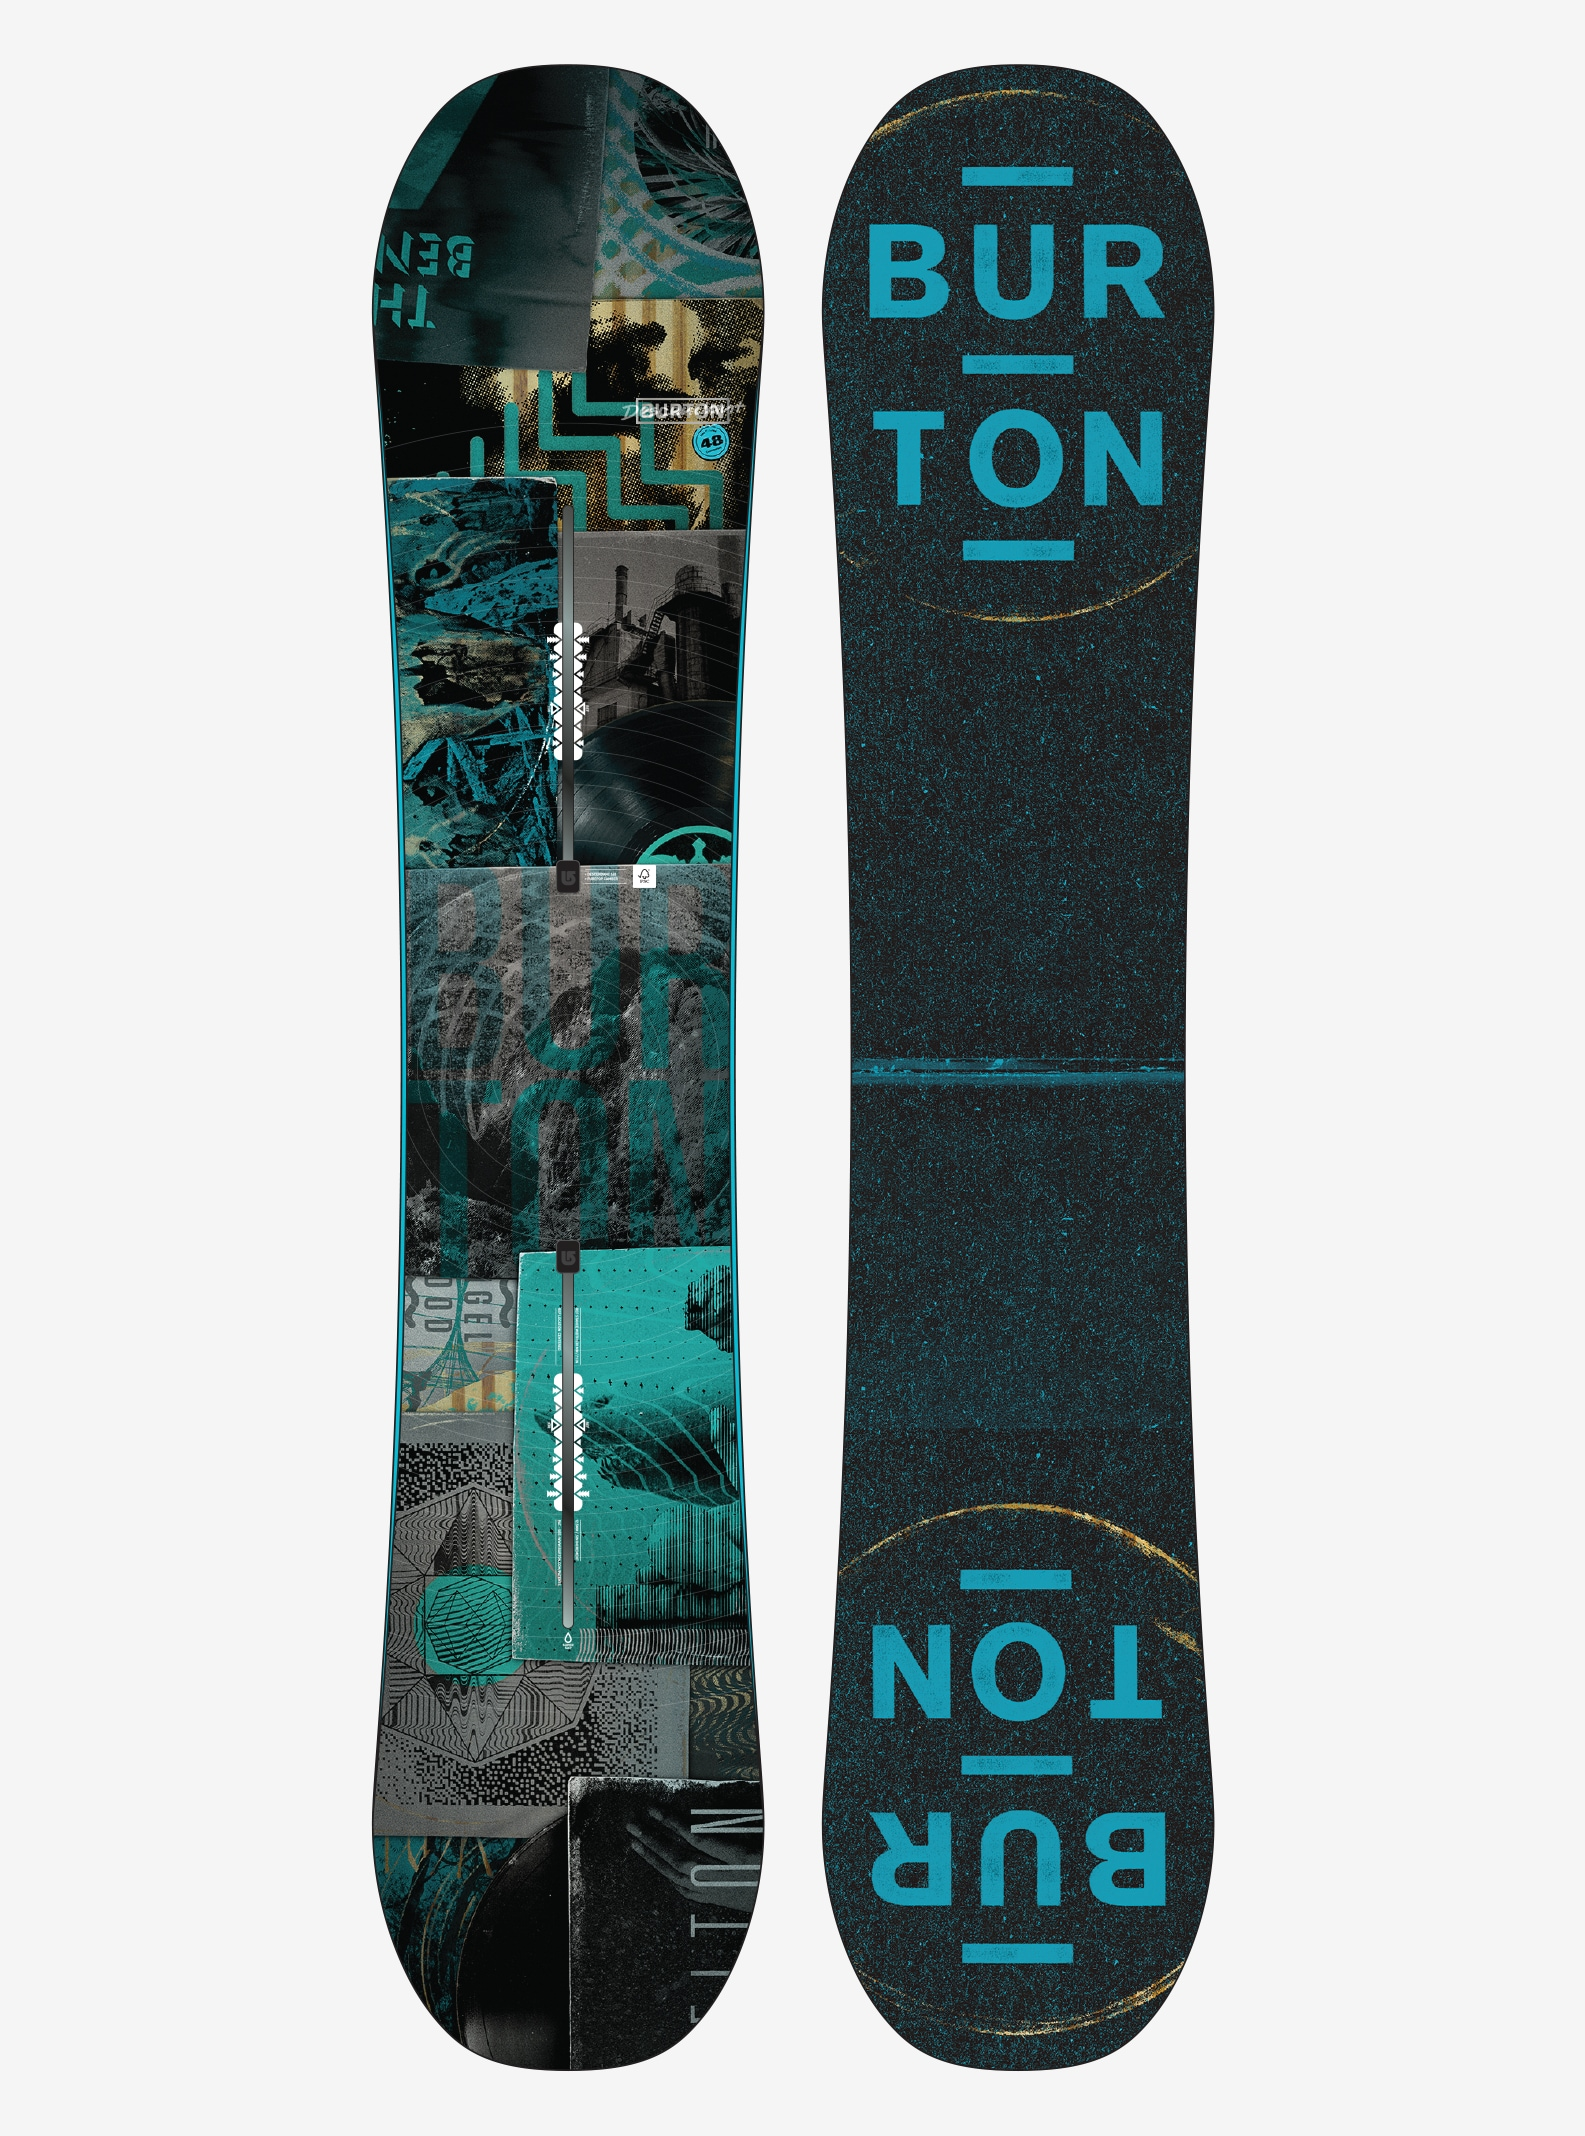 Men's Burton Descendant Snowboard shown in 148